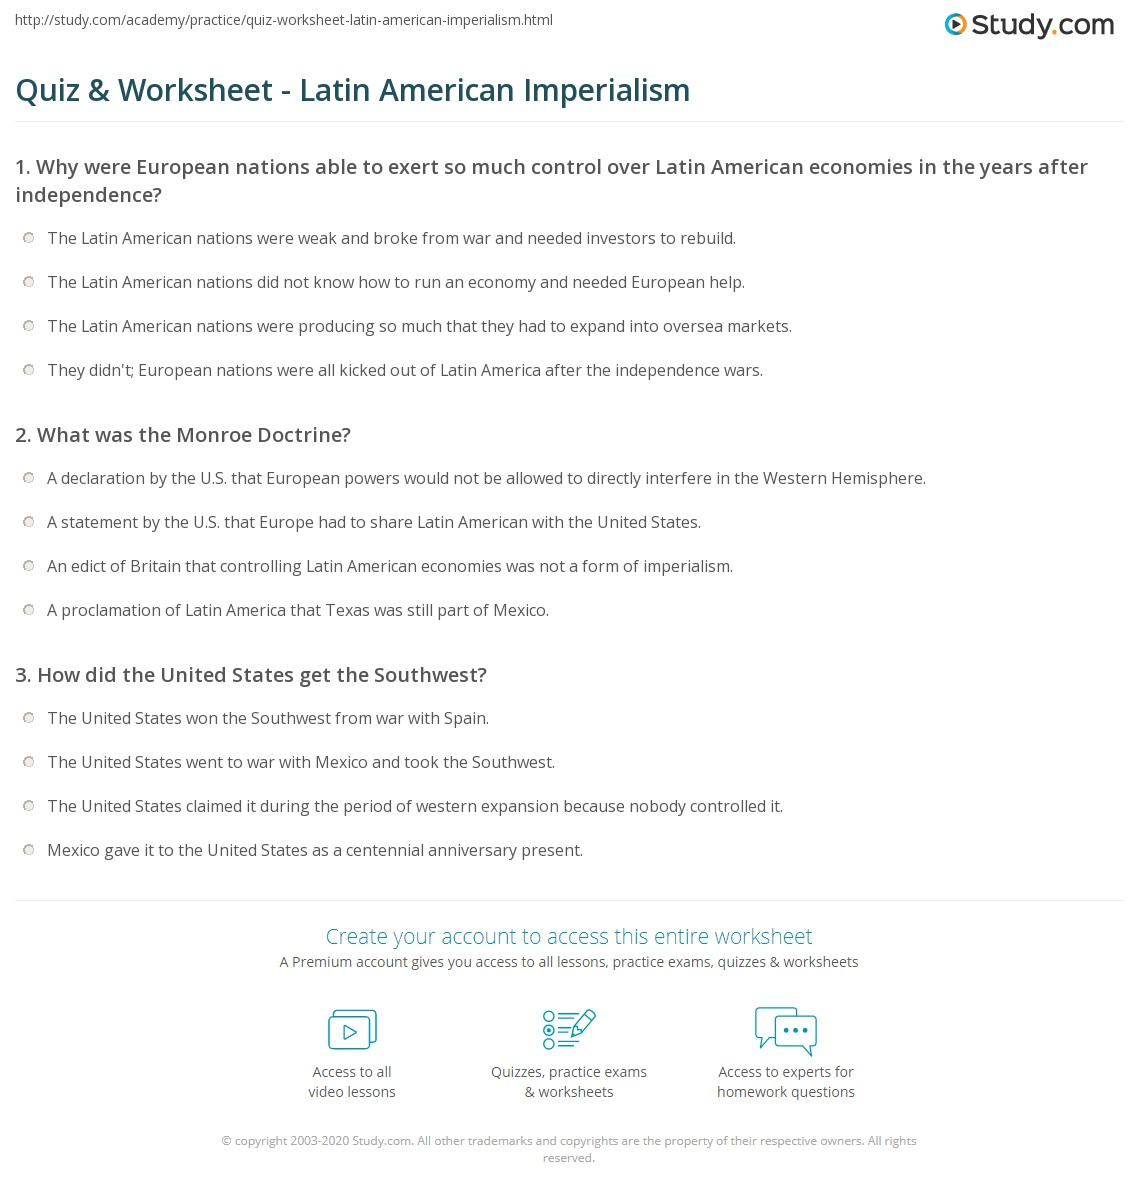 Quiz & Worksheet - Latin American Imperialism | Study.com